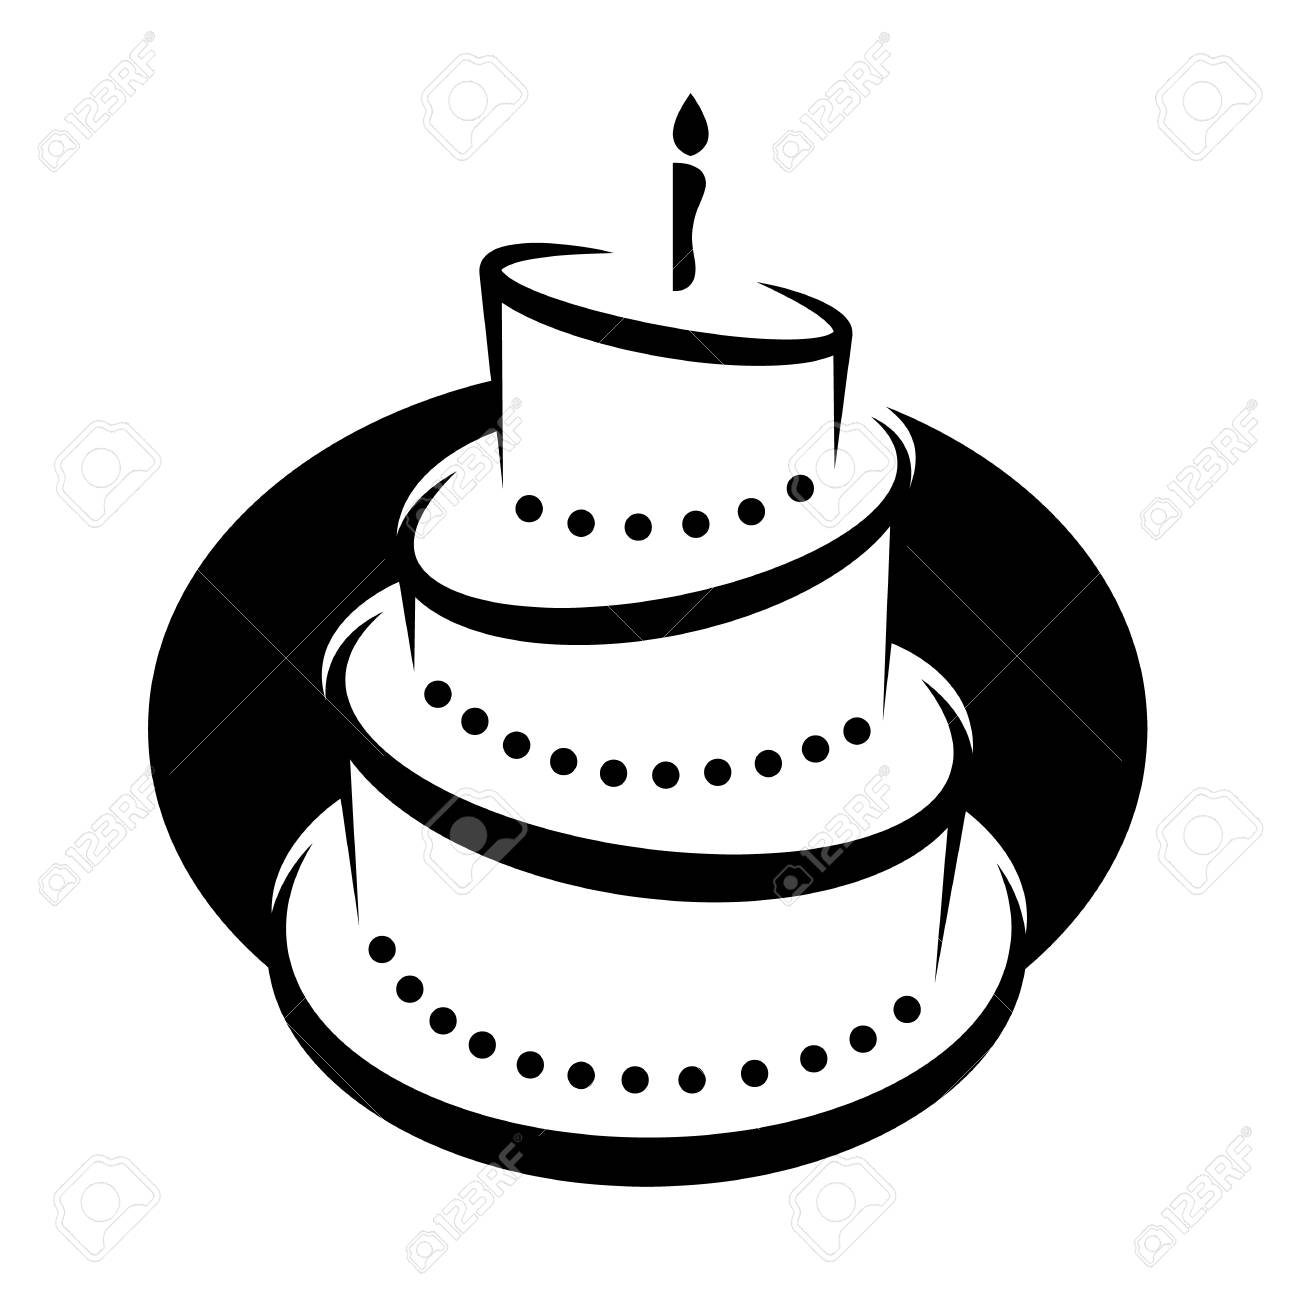 Clip Art Of A Black And White Tiered Birthday Cake With Candles Royalty Free Cliparts Vectors And Stock Illustration Image 124846286